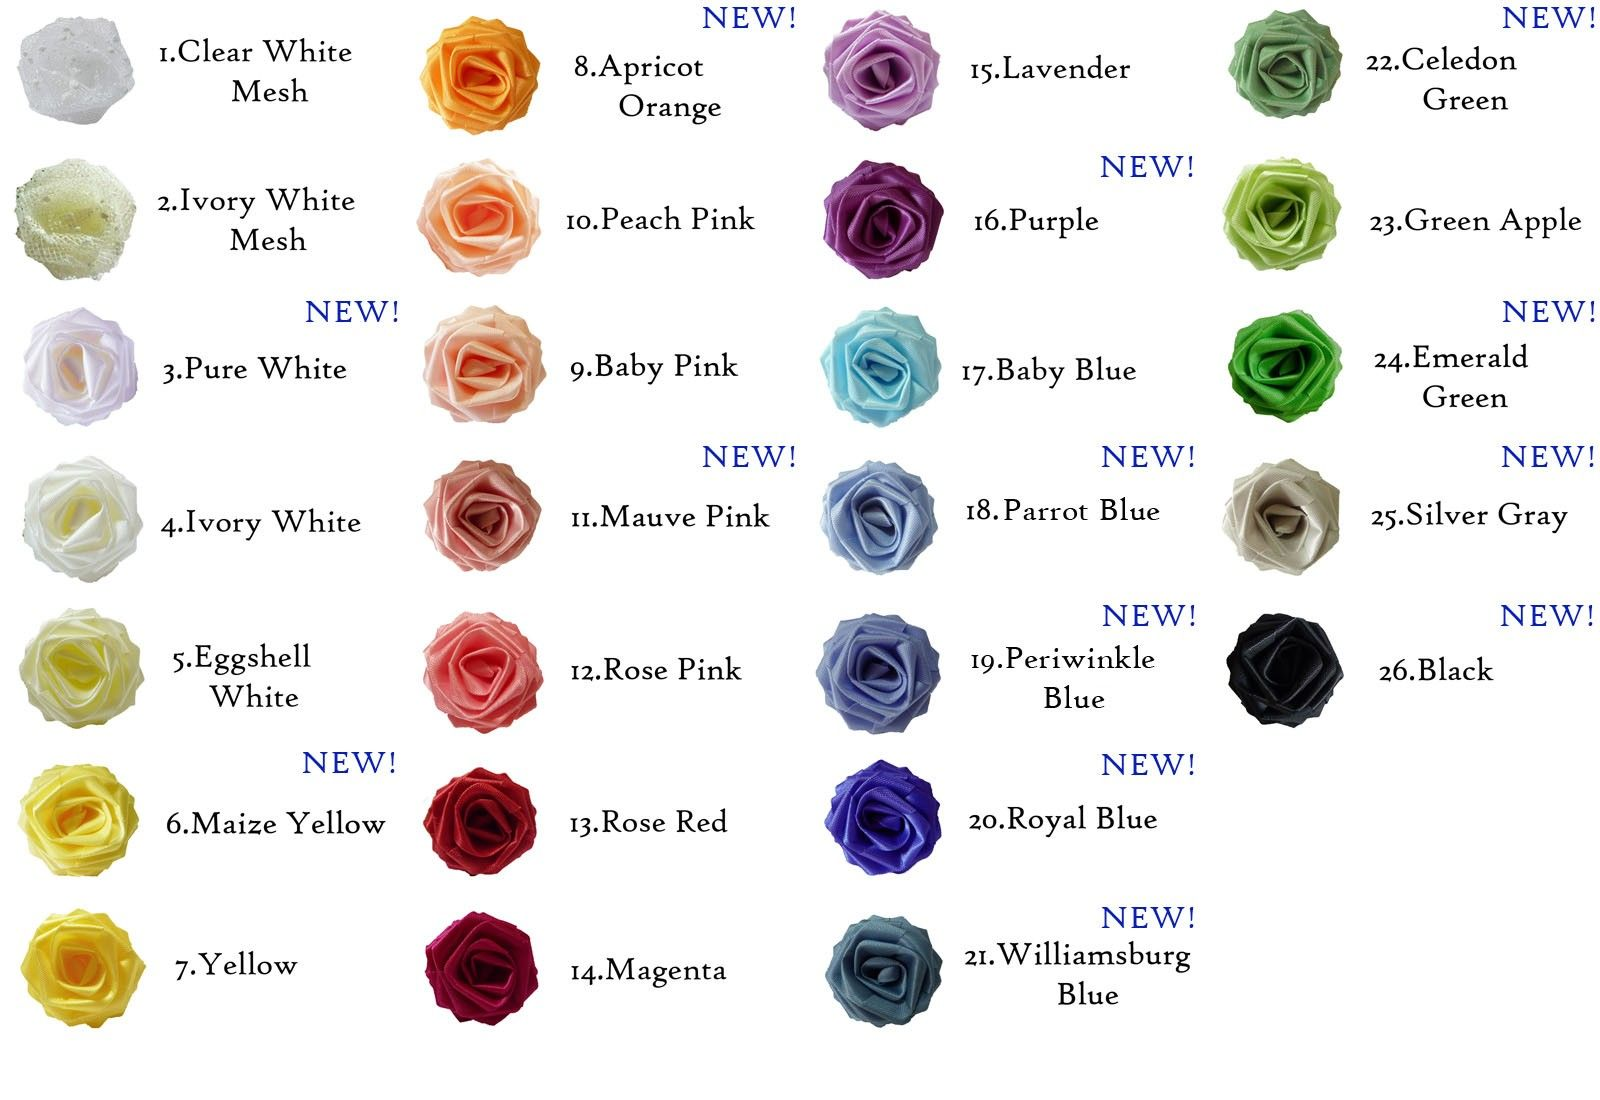 Our Rose Colors And Meanings Guide Contains Helpful Hints About The Meaning